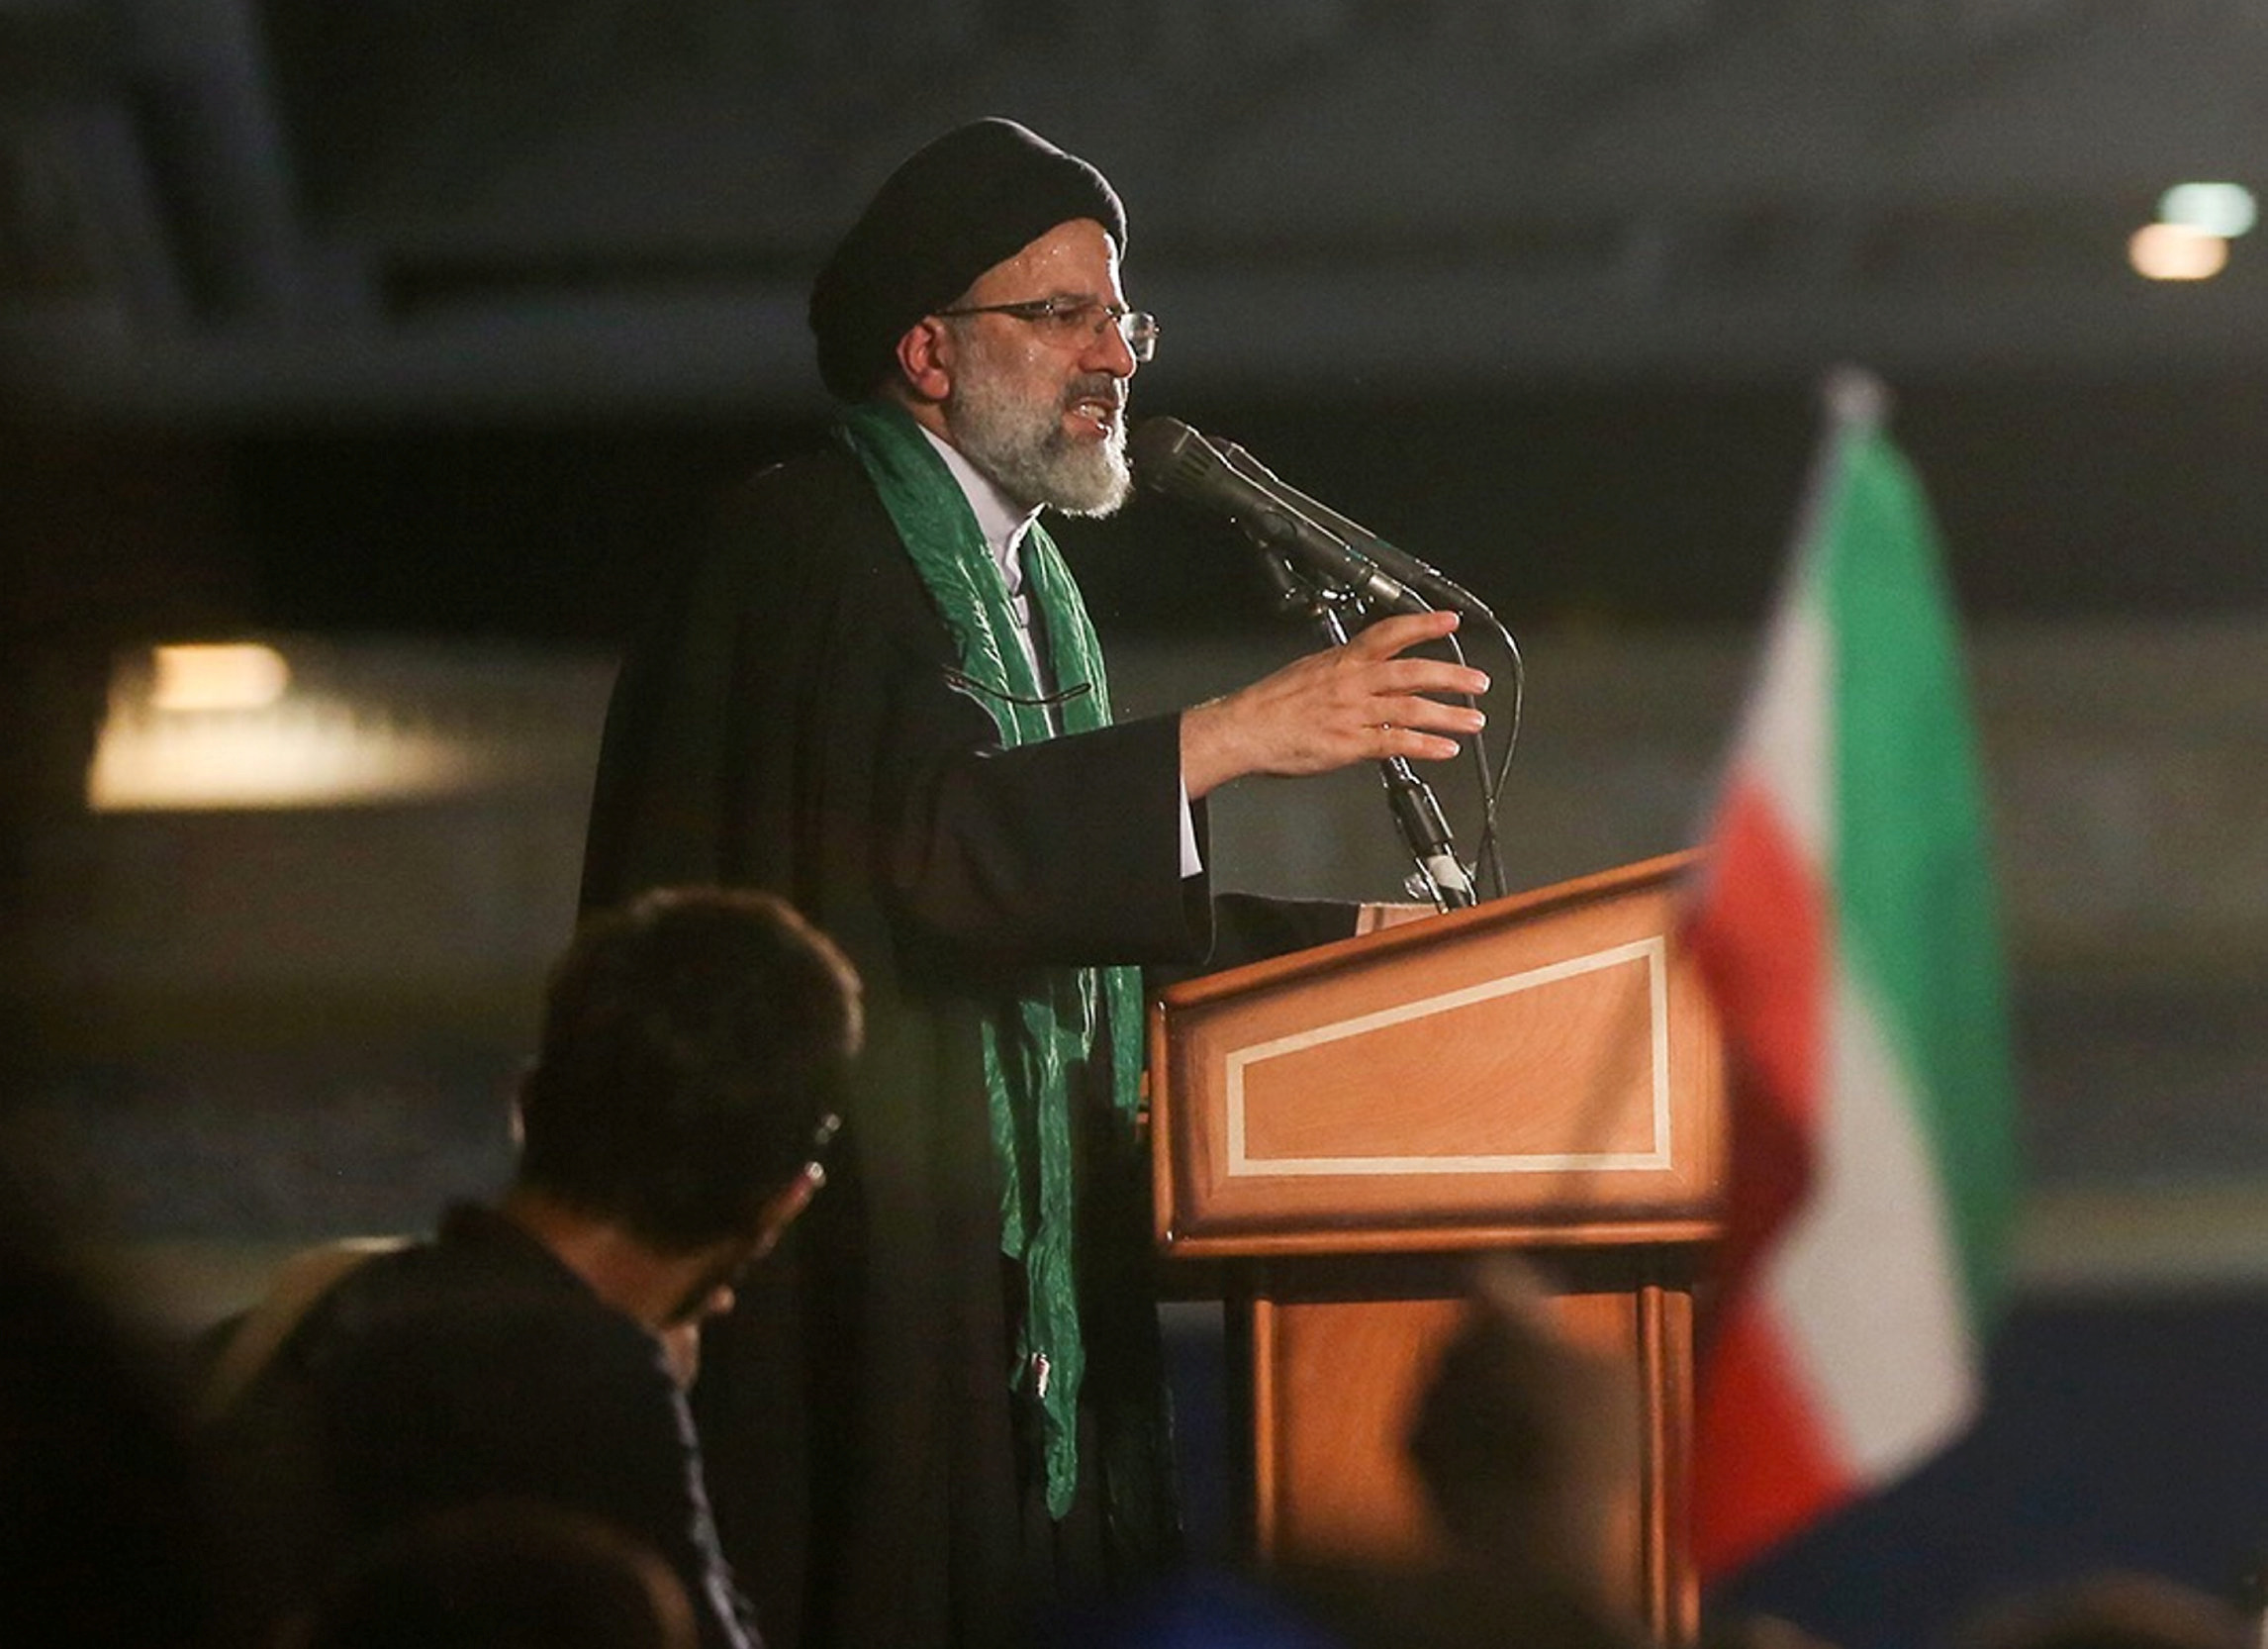 Iranian Presidential candidate Ebrahim Raisi speaks during a campaign meeting at the Mosalla mosque in Tehran, Iran, May 16, 2017. Picture taken May 16, 2017. TIMA via REUTERS